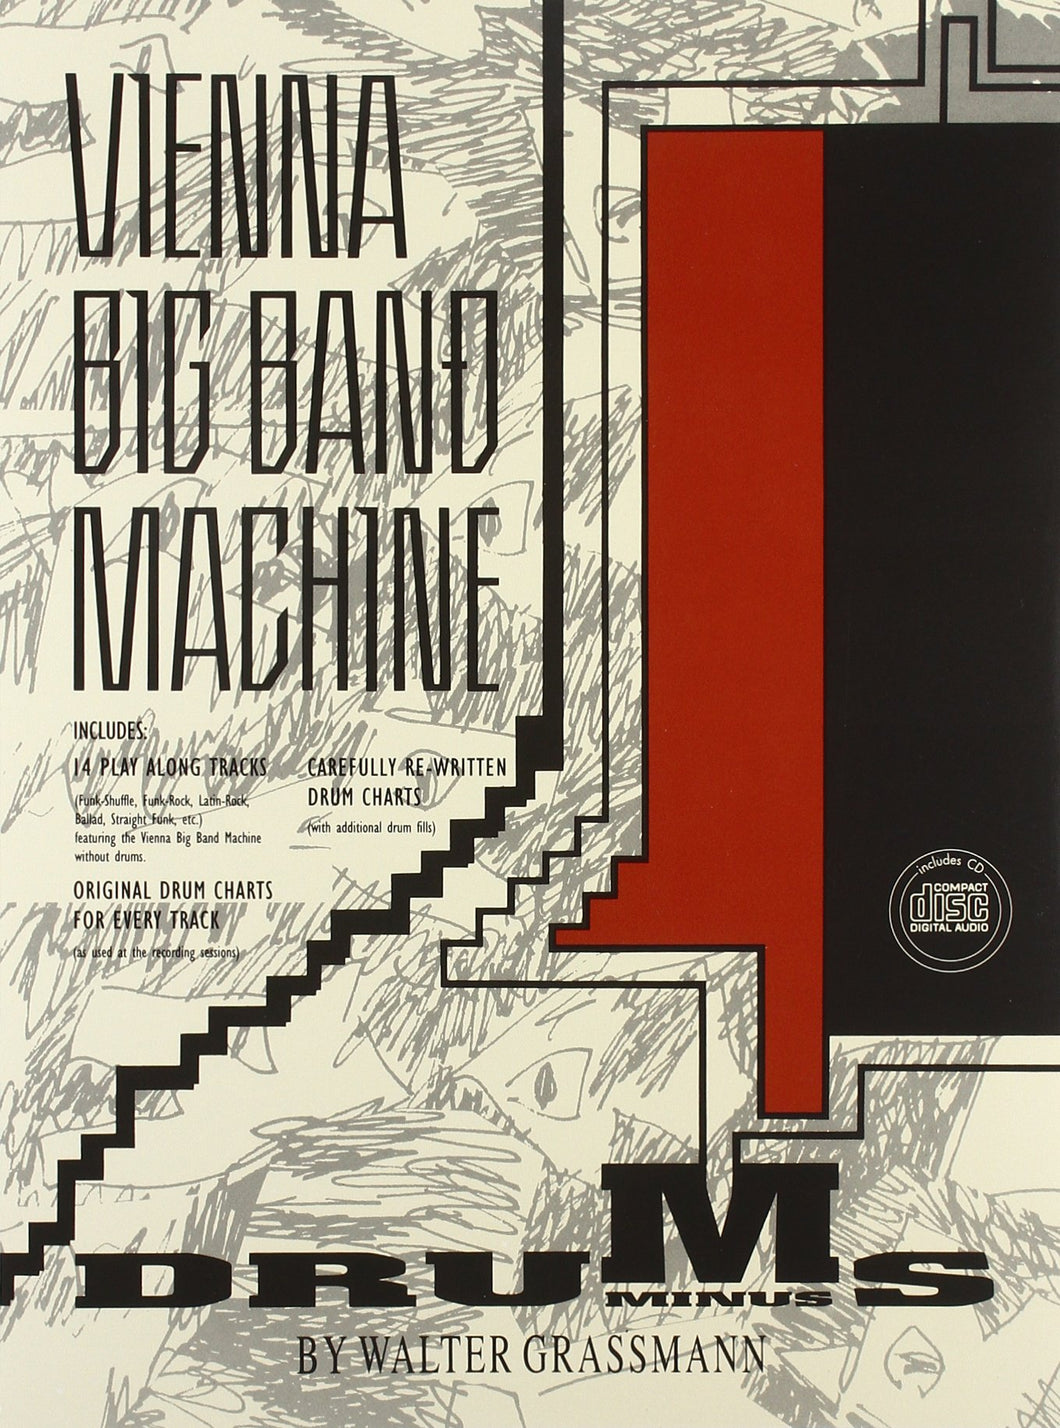 Gettin' The Rhythm - Vienna Big Band Machine - Collection of Drum Transcriptions / Drum Sheet Music - Alfred Music VBBMMD